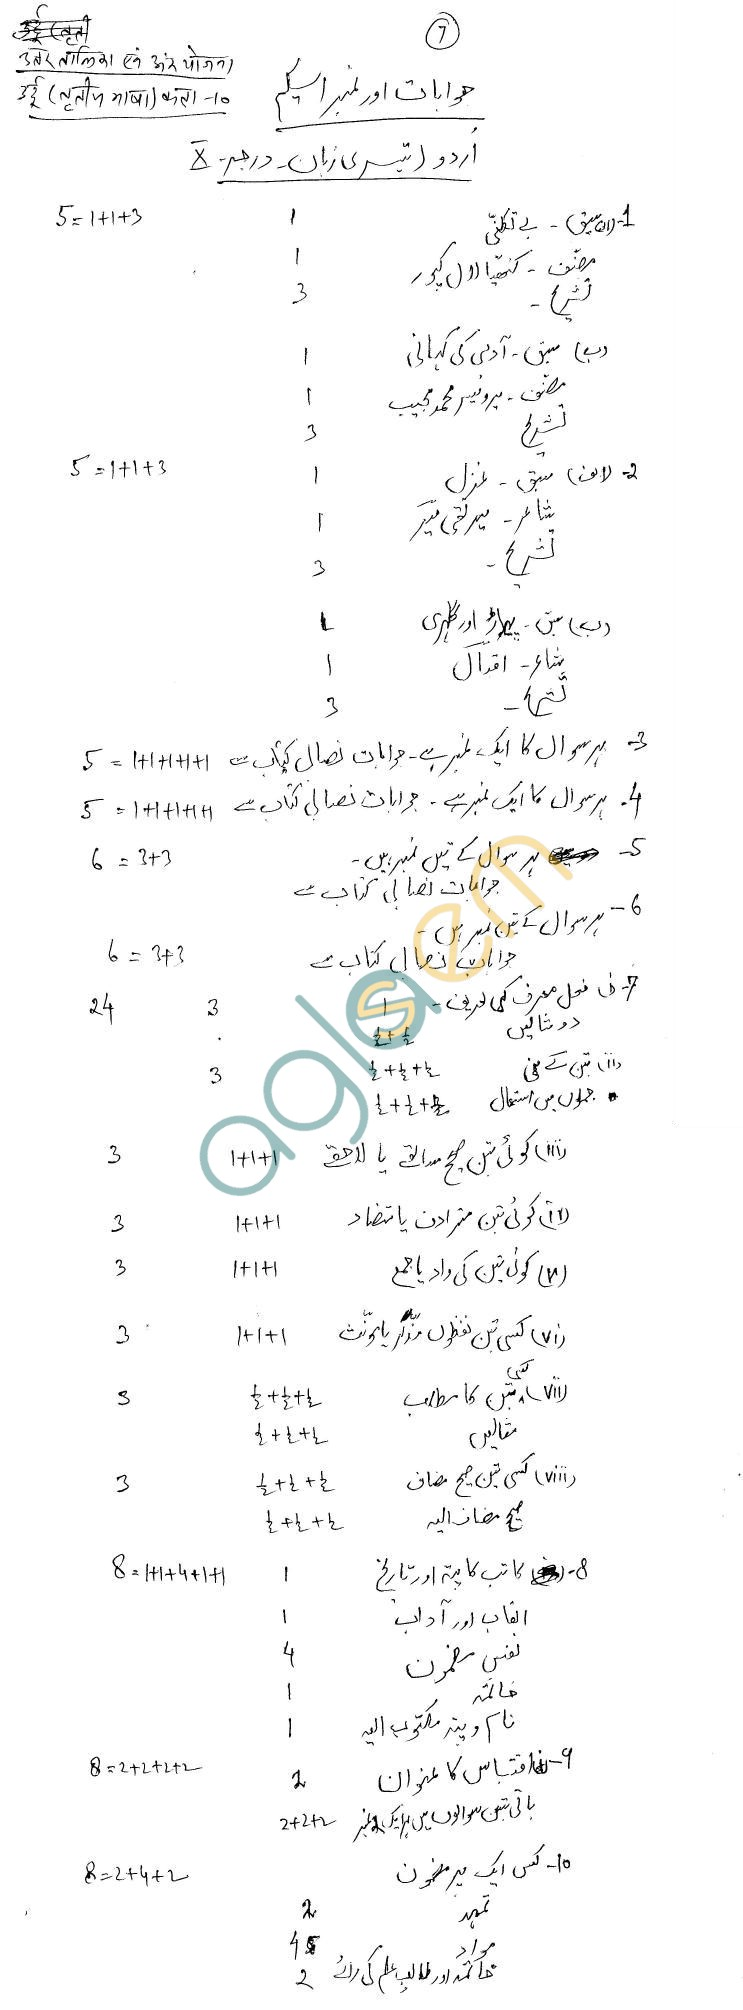 Rajasthan Board Class 10 Urdu T. L. Model Question Paper